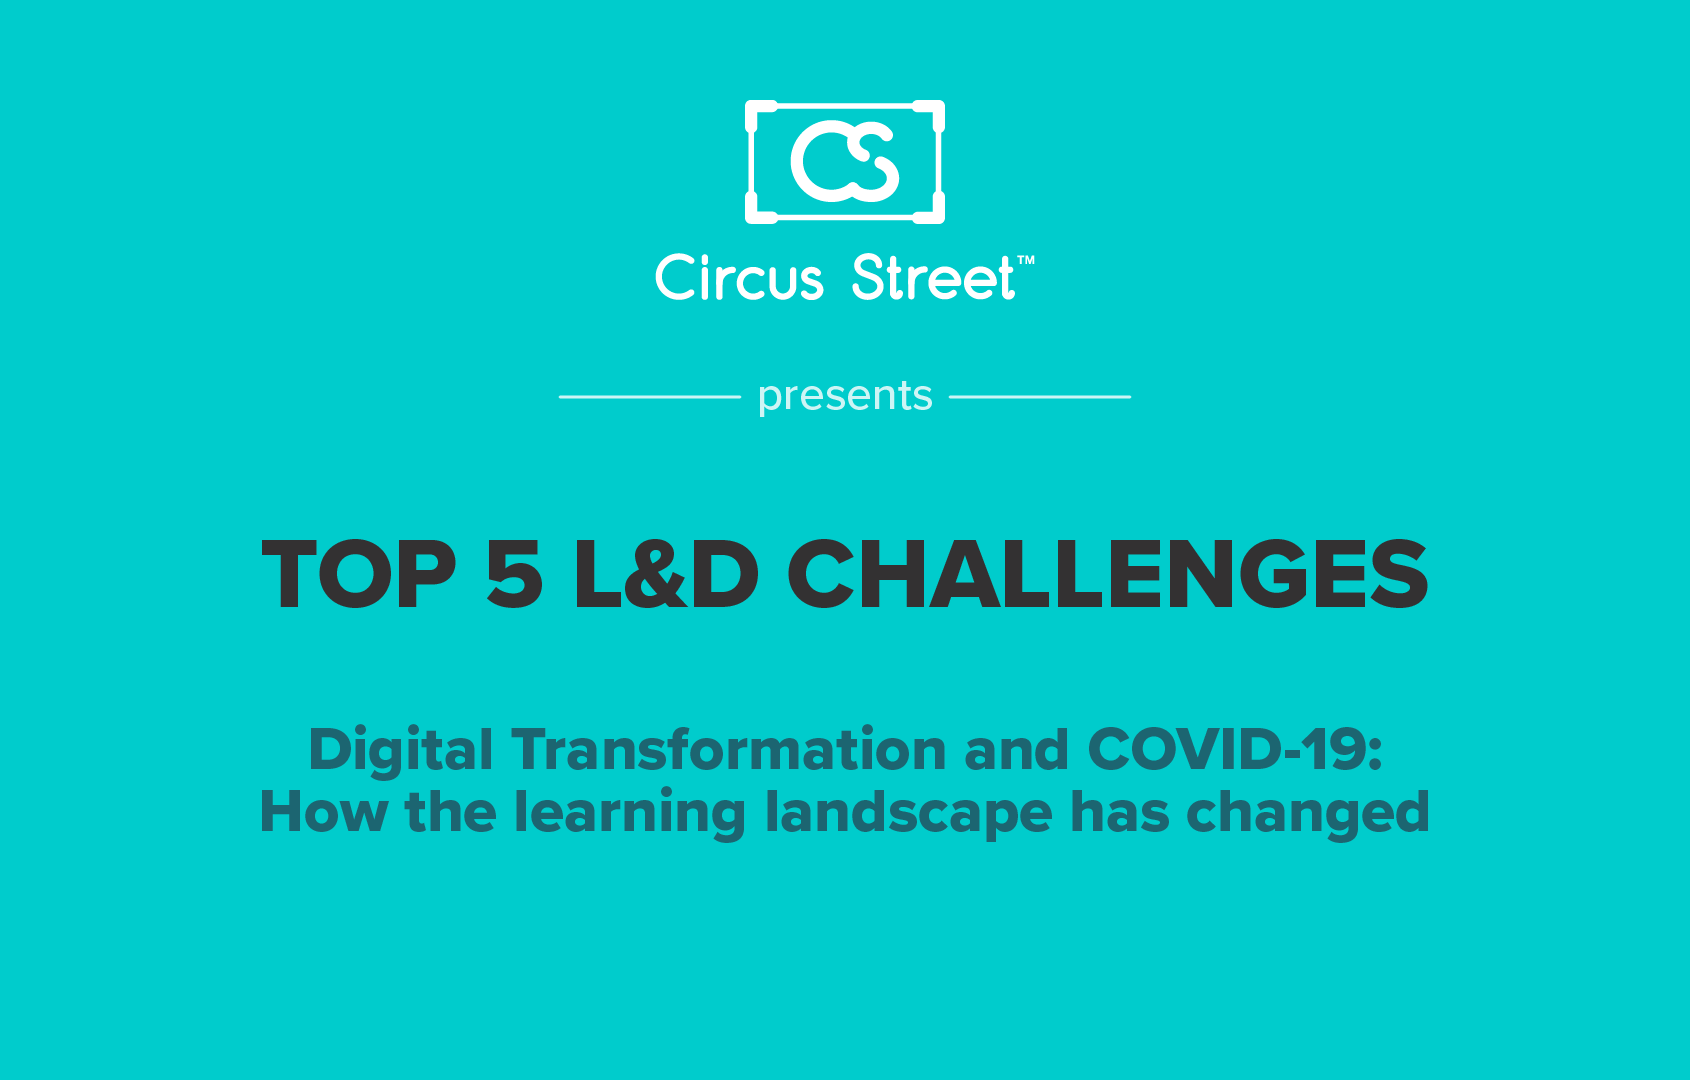 Digital Transformation & Covid-19: How the learning landscape has changed